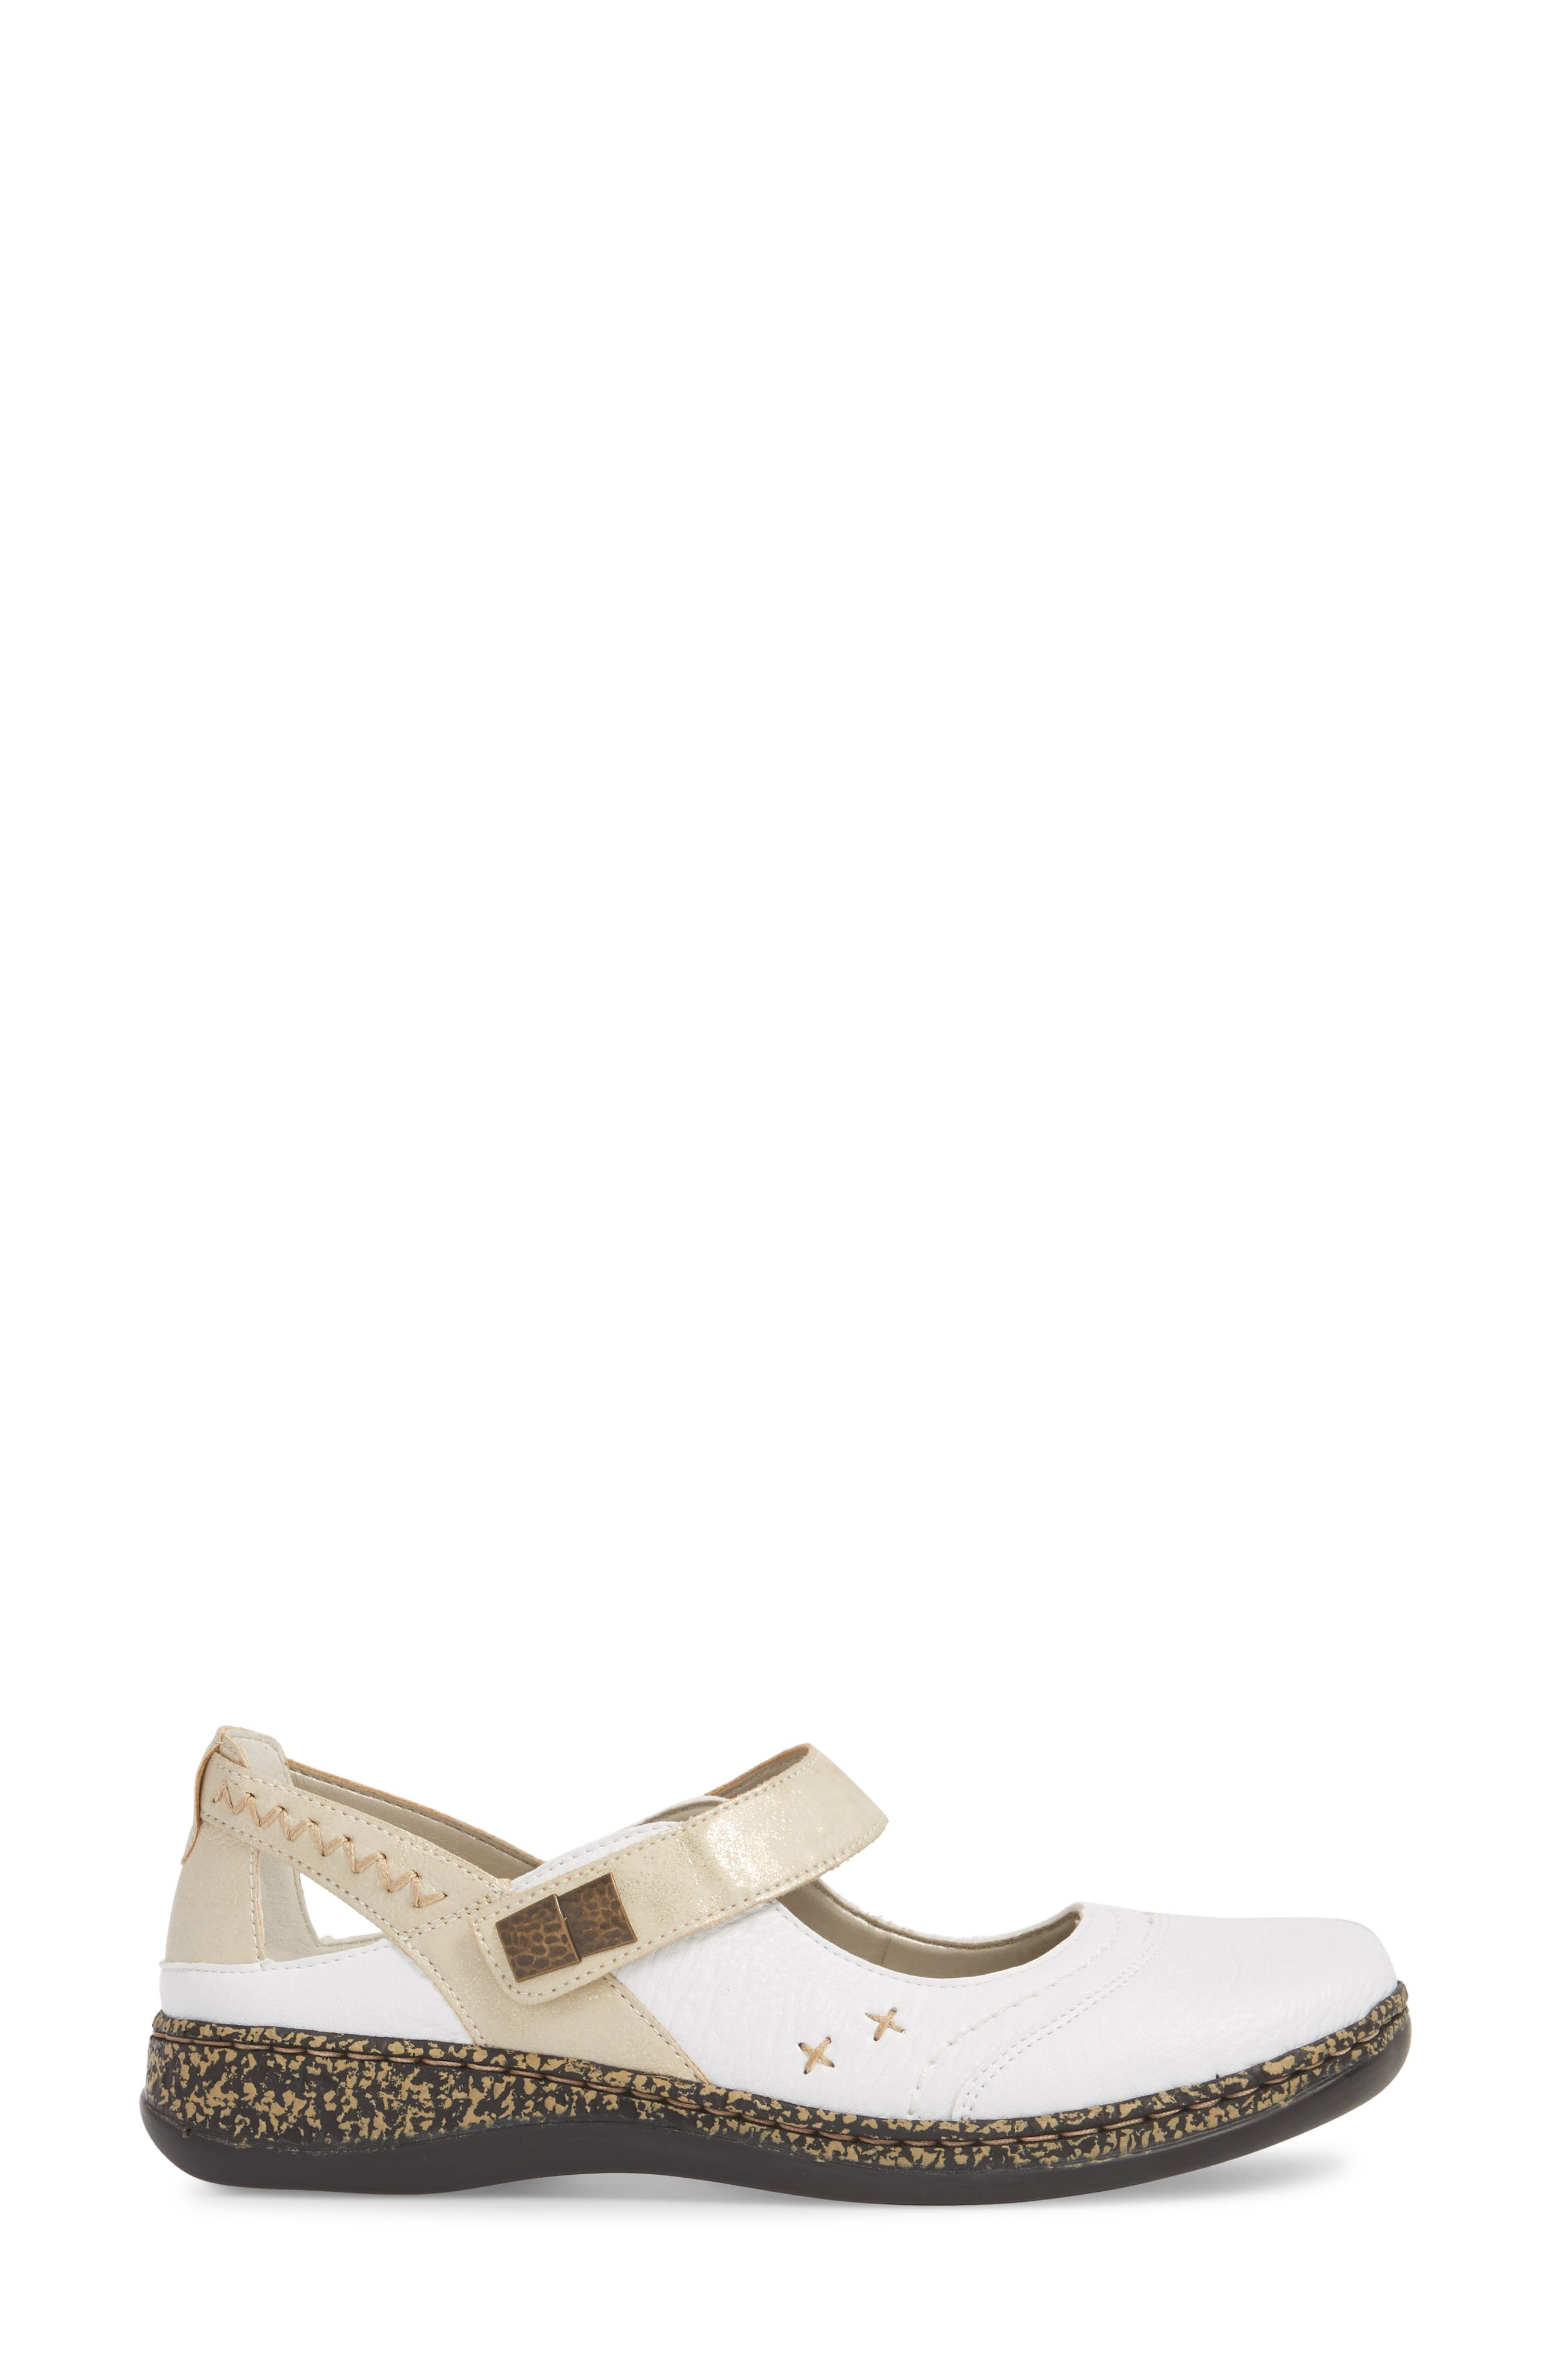 Daisy 78 Mary Jane Flat,                             Alternate thumbnail 3, color,                             WHITE/ GOLD SYNTHETIC LEATHER